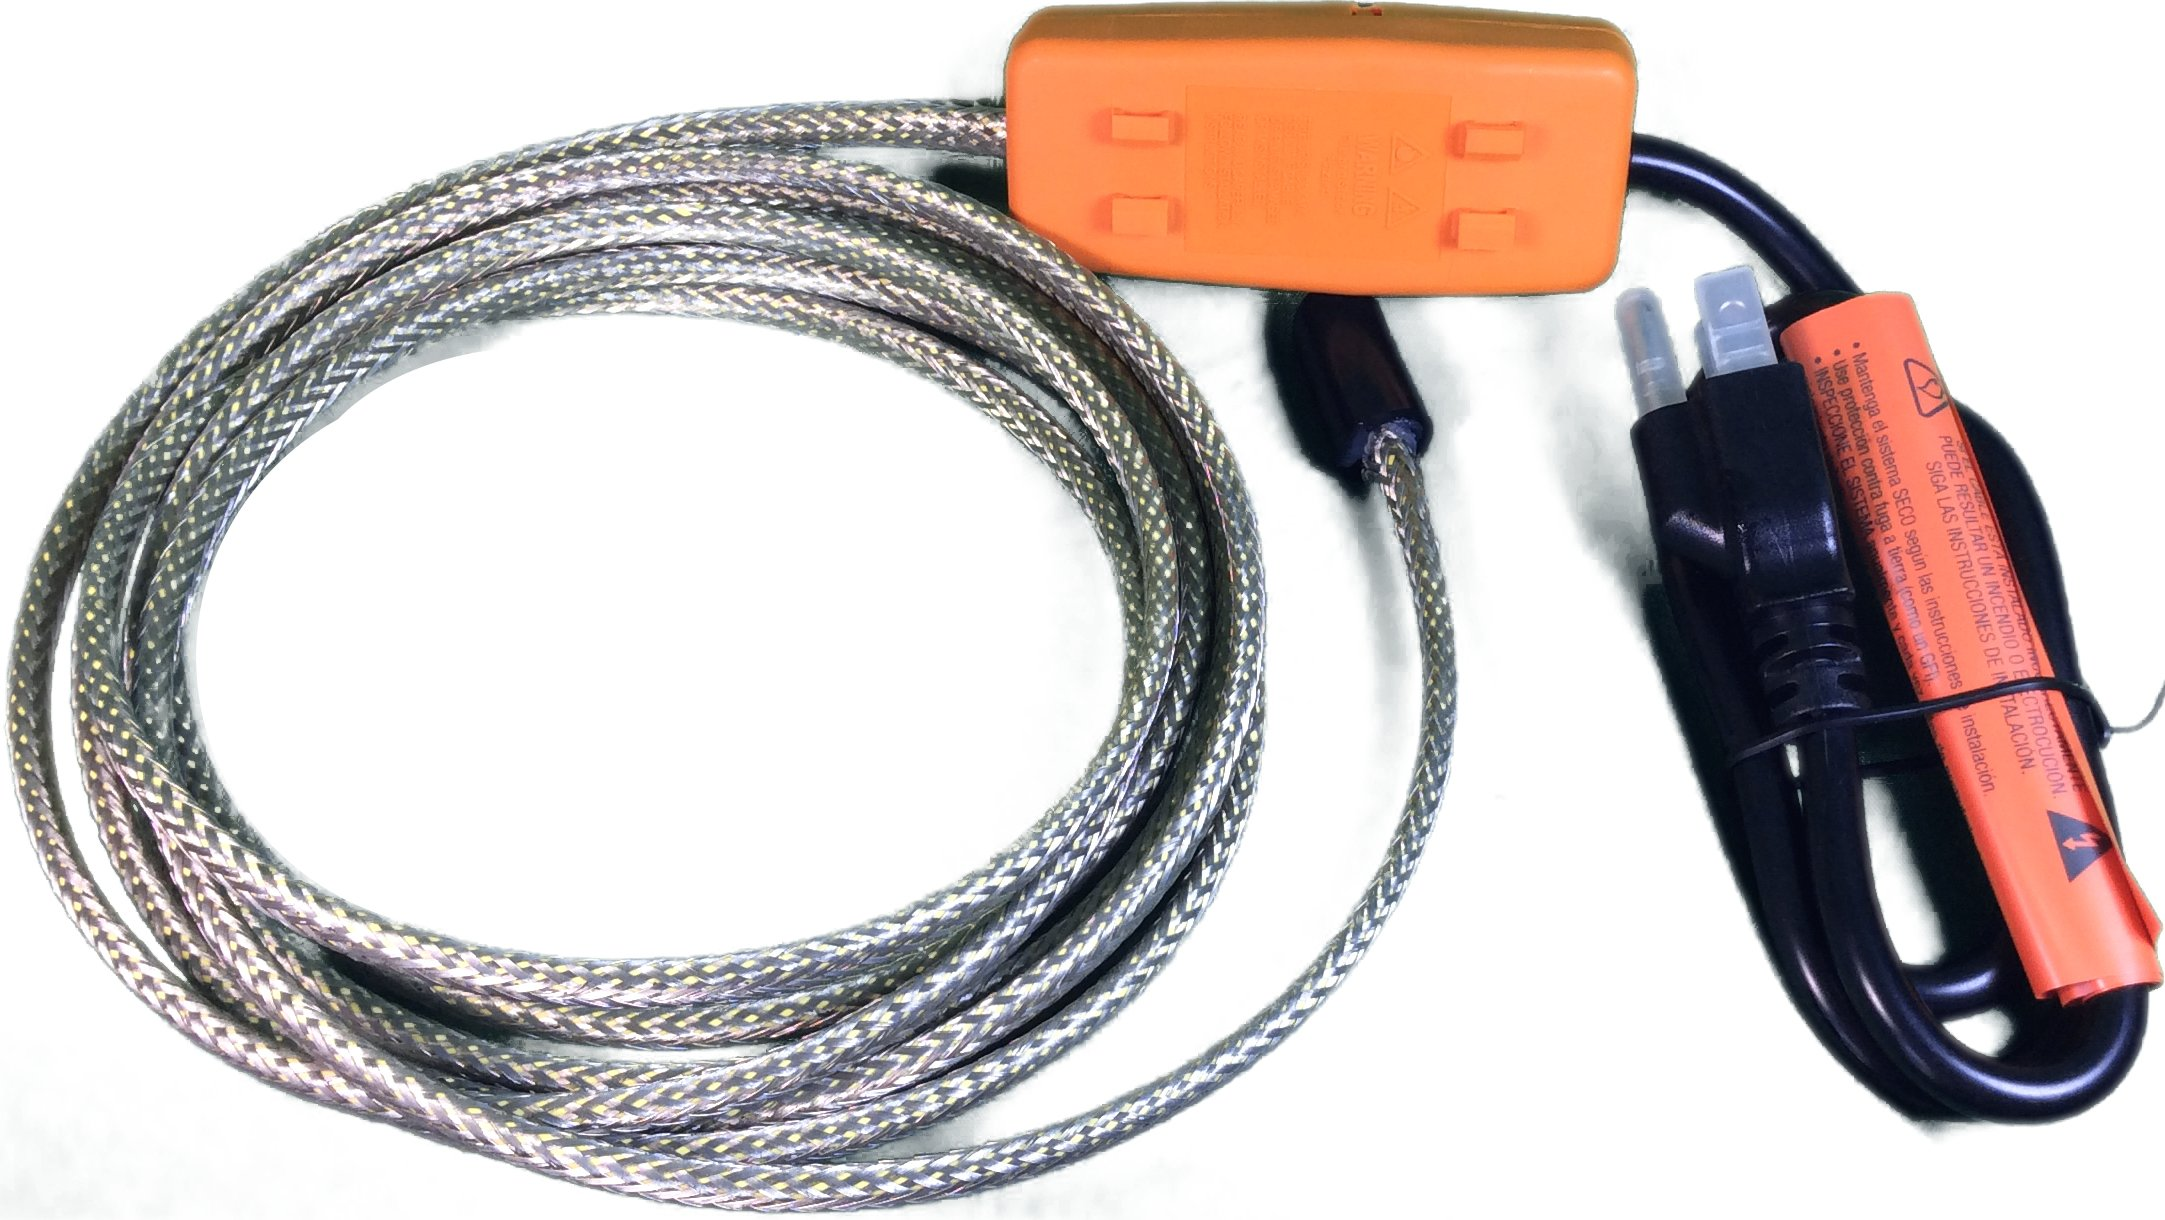 Heat Tape Easy Heat Freeze Protection Cable Waterline Heater Pre-cut to 60 Foot includes Installed Plug Head by Easy Heat